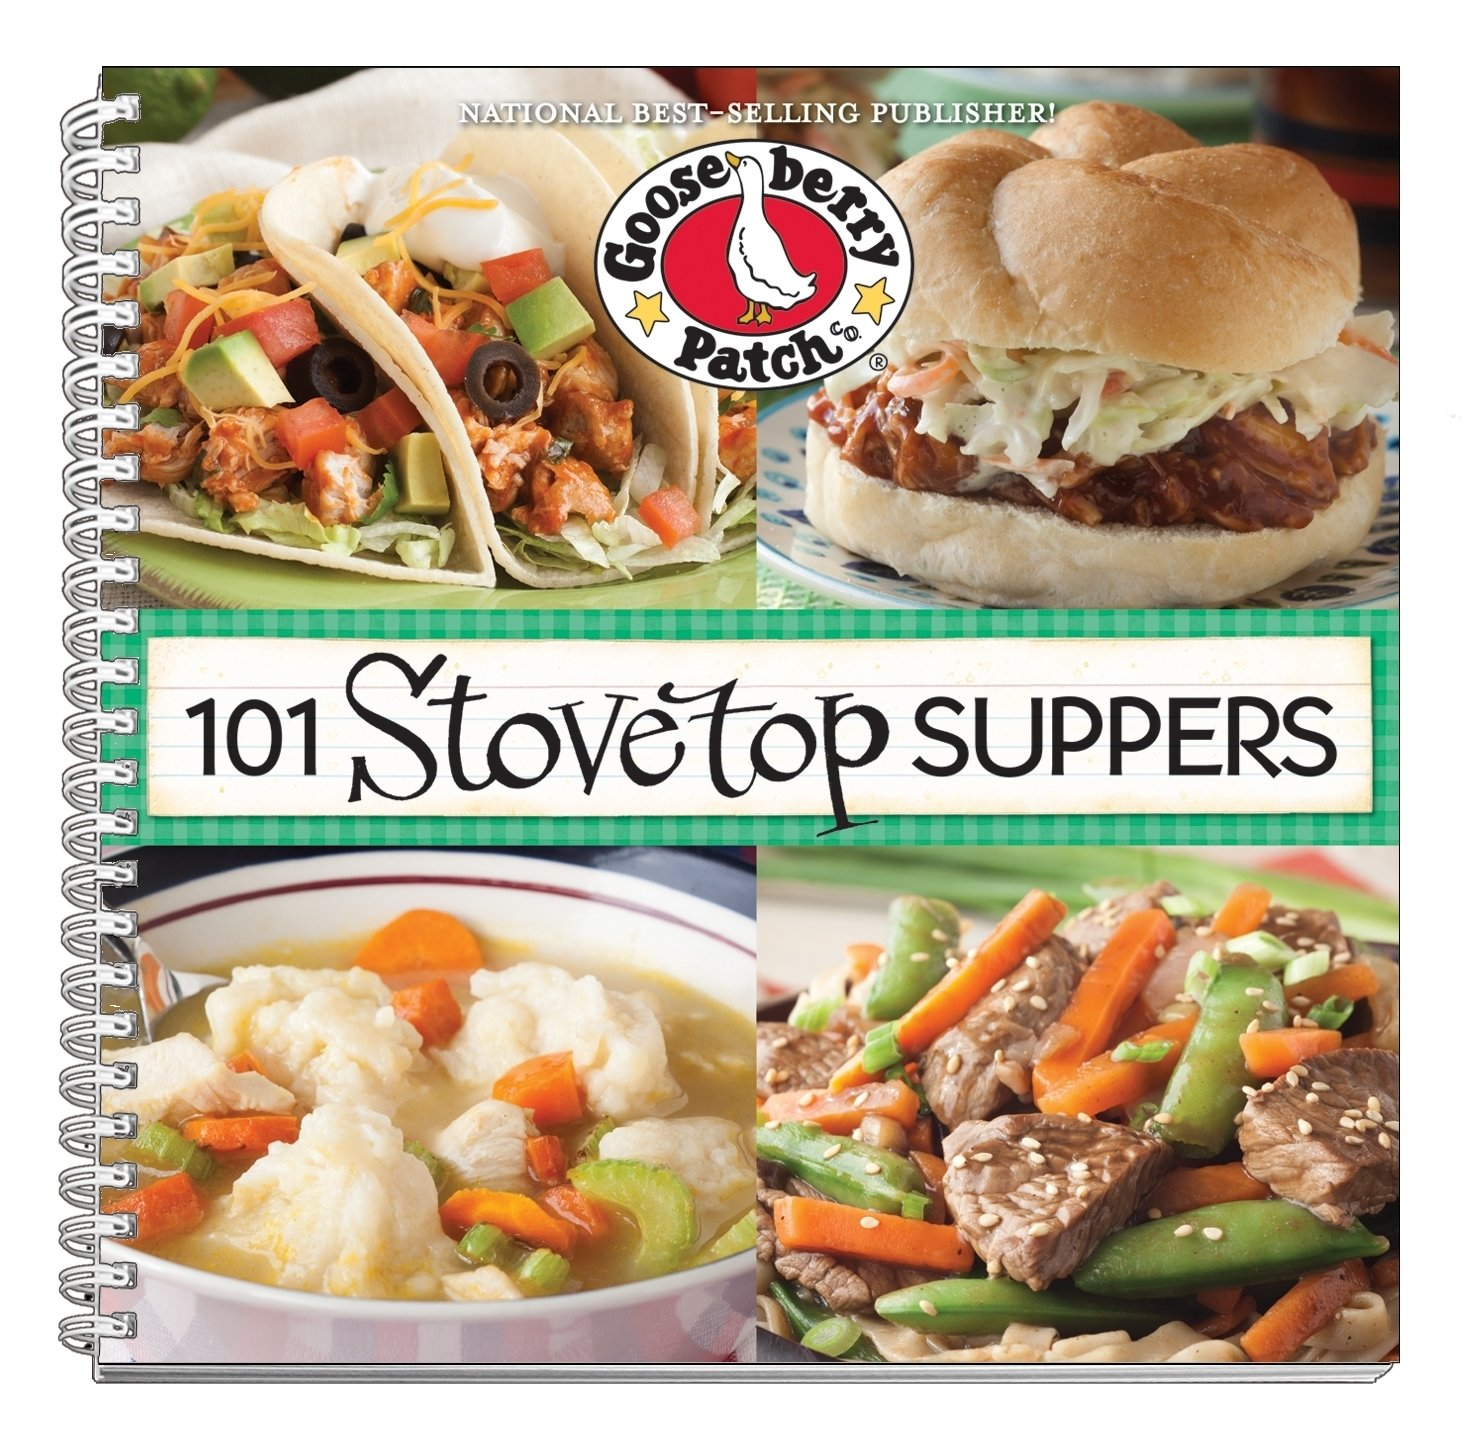 101 Stovetop Suppers: 101 Quick & Easy Recipes That Only use One Pot, Pan  or Skillet! (101 Cookbook Collection): Gooseberry Patch: 9781620930298: ...